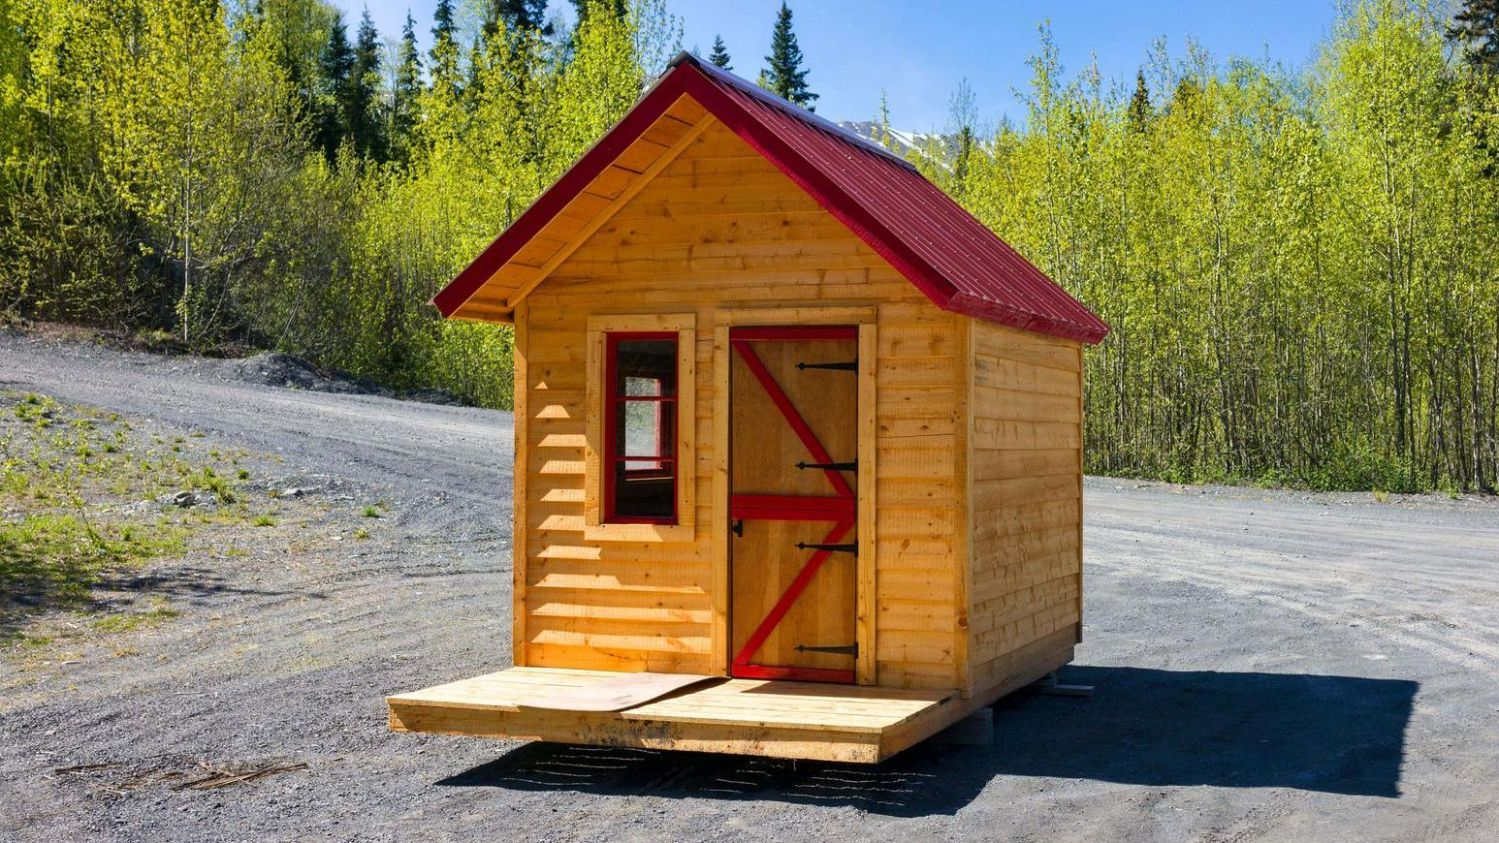 Go small or go home: how the tiny house movement got so big - The ..